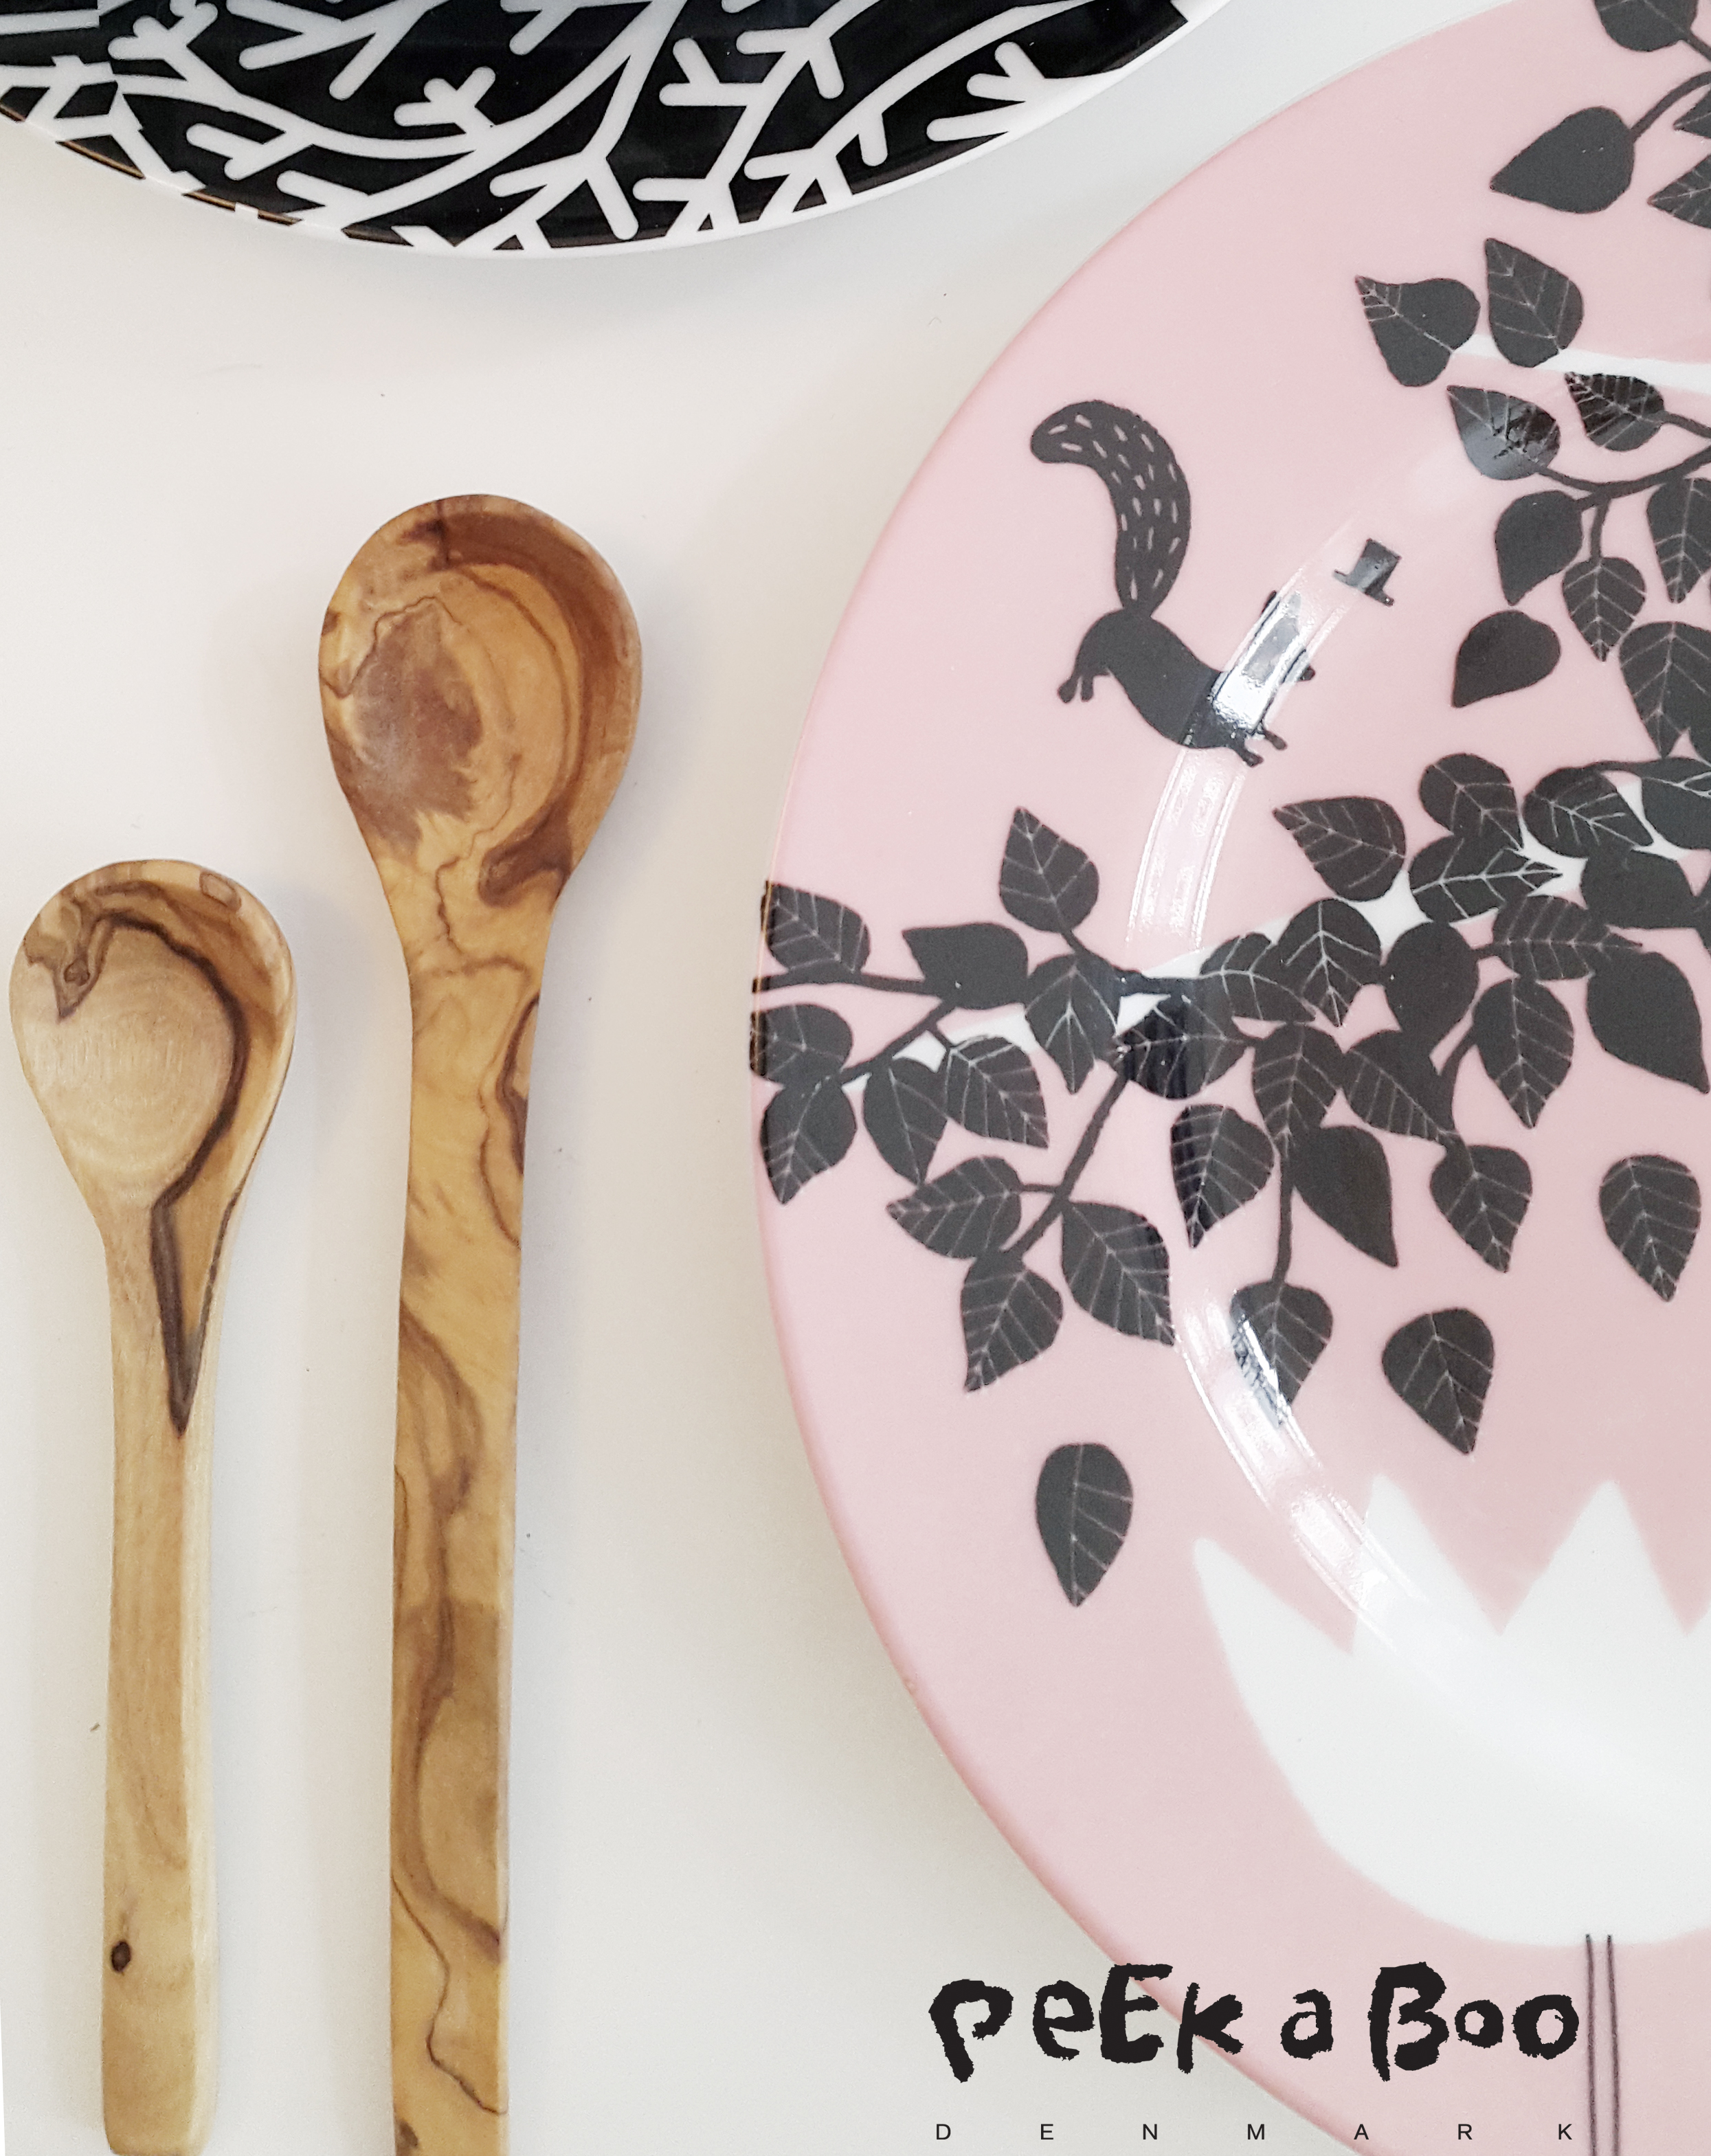 House of Rym swedish interior brand. they want to combine modern Swedish design with traditional Tunisian craftsmanship.